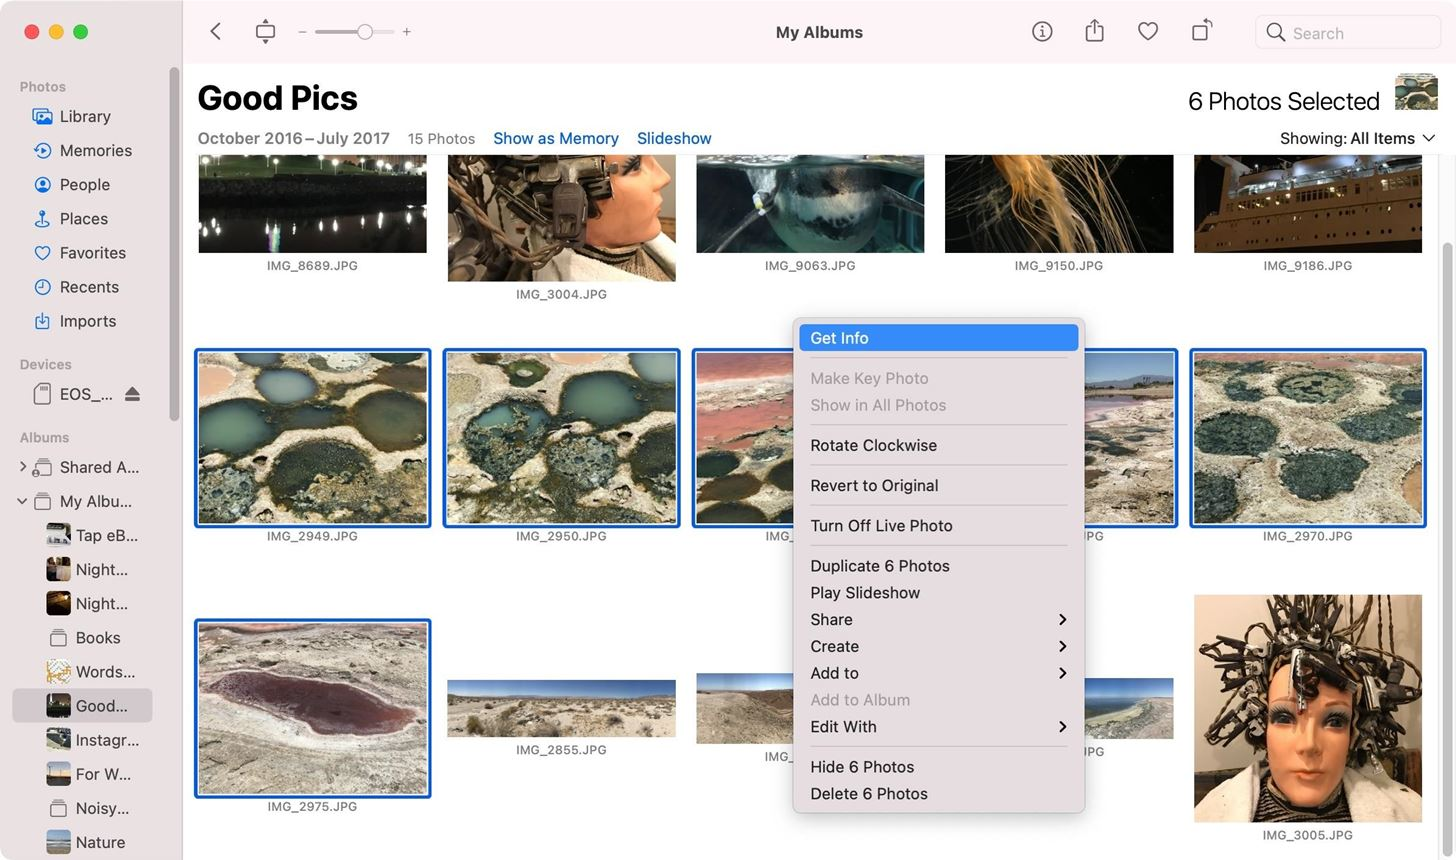 How to Bulk Add or Change Captions for Photos on Your iPhone Instead of Doing It One by One